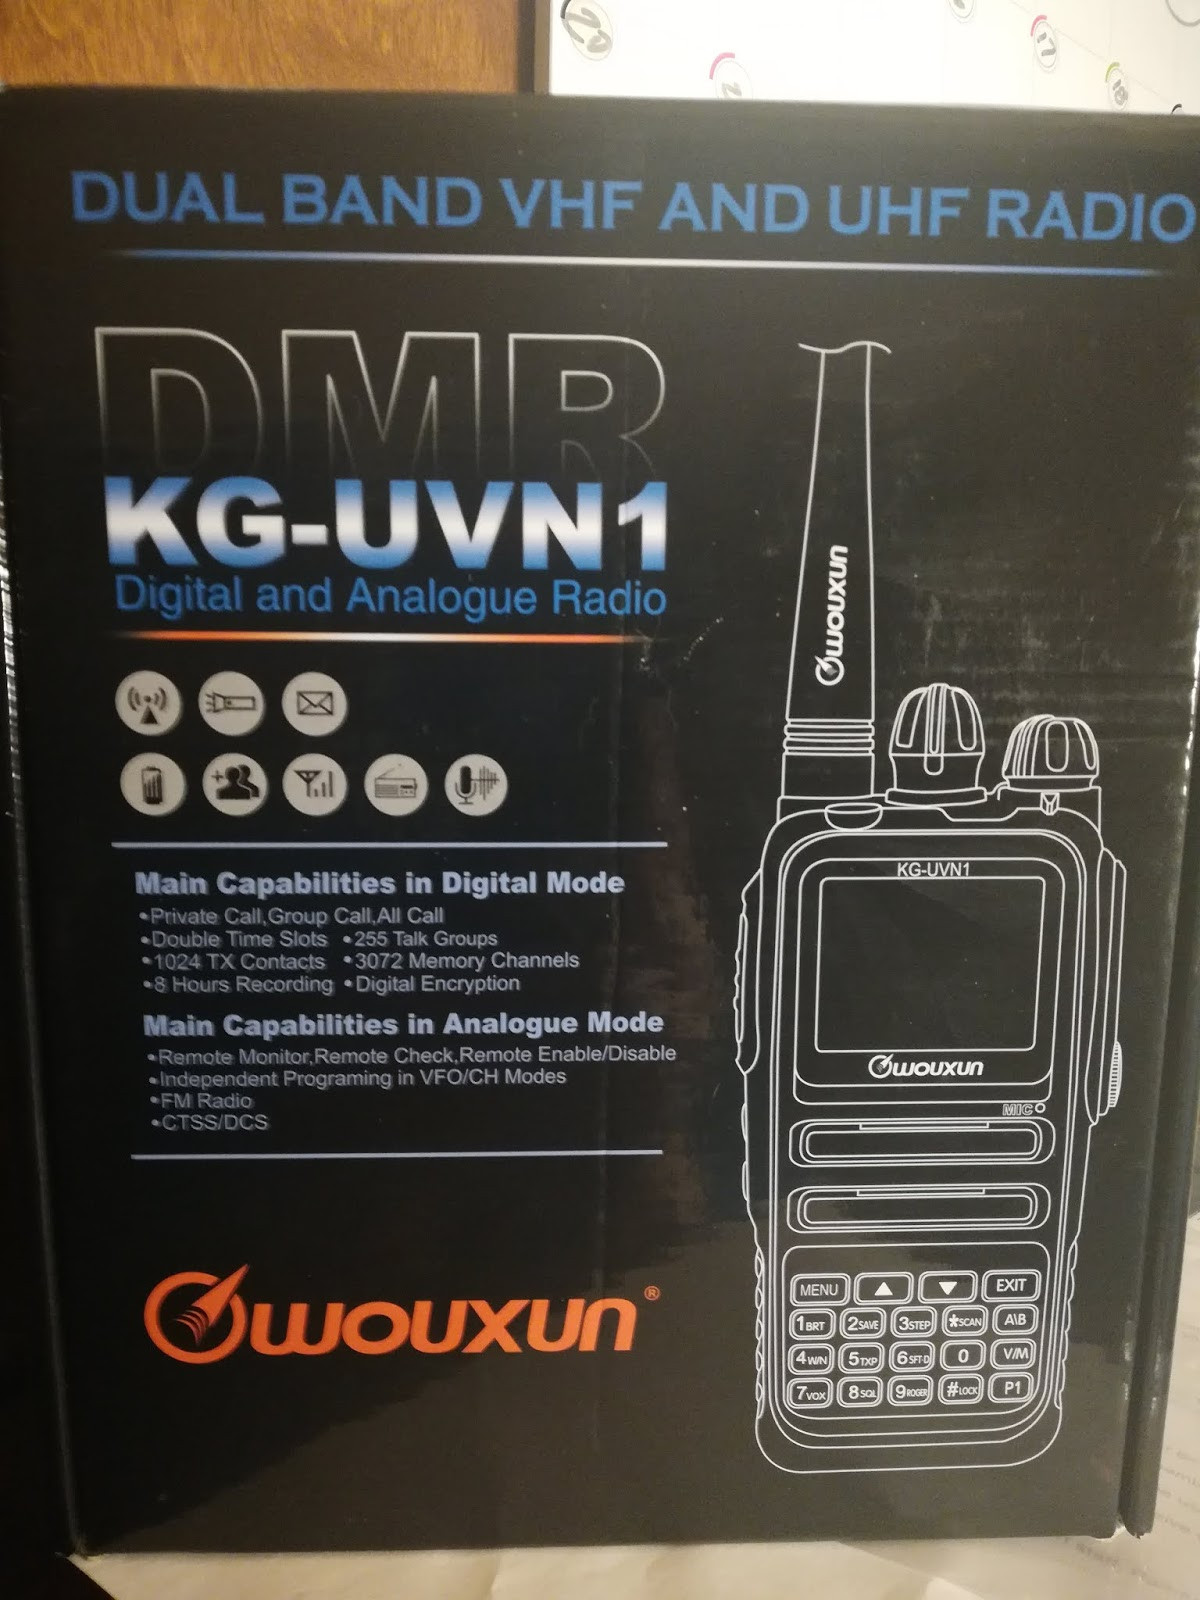 Meet The Wouxun KG-UVN1 DMR Dual Band Hand Held, A Review By KG7GUO